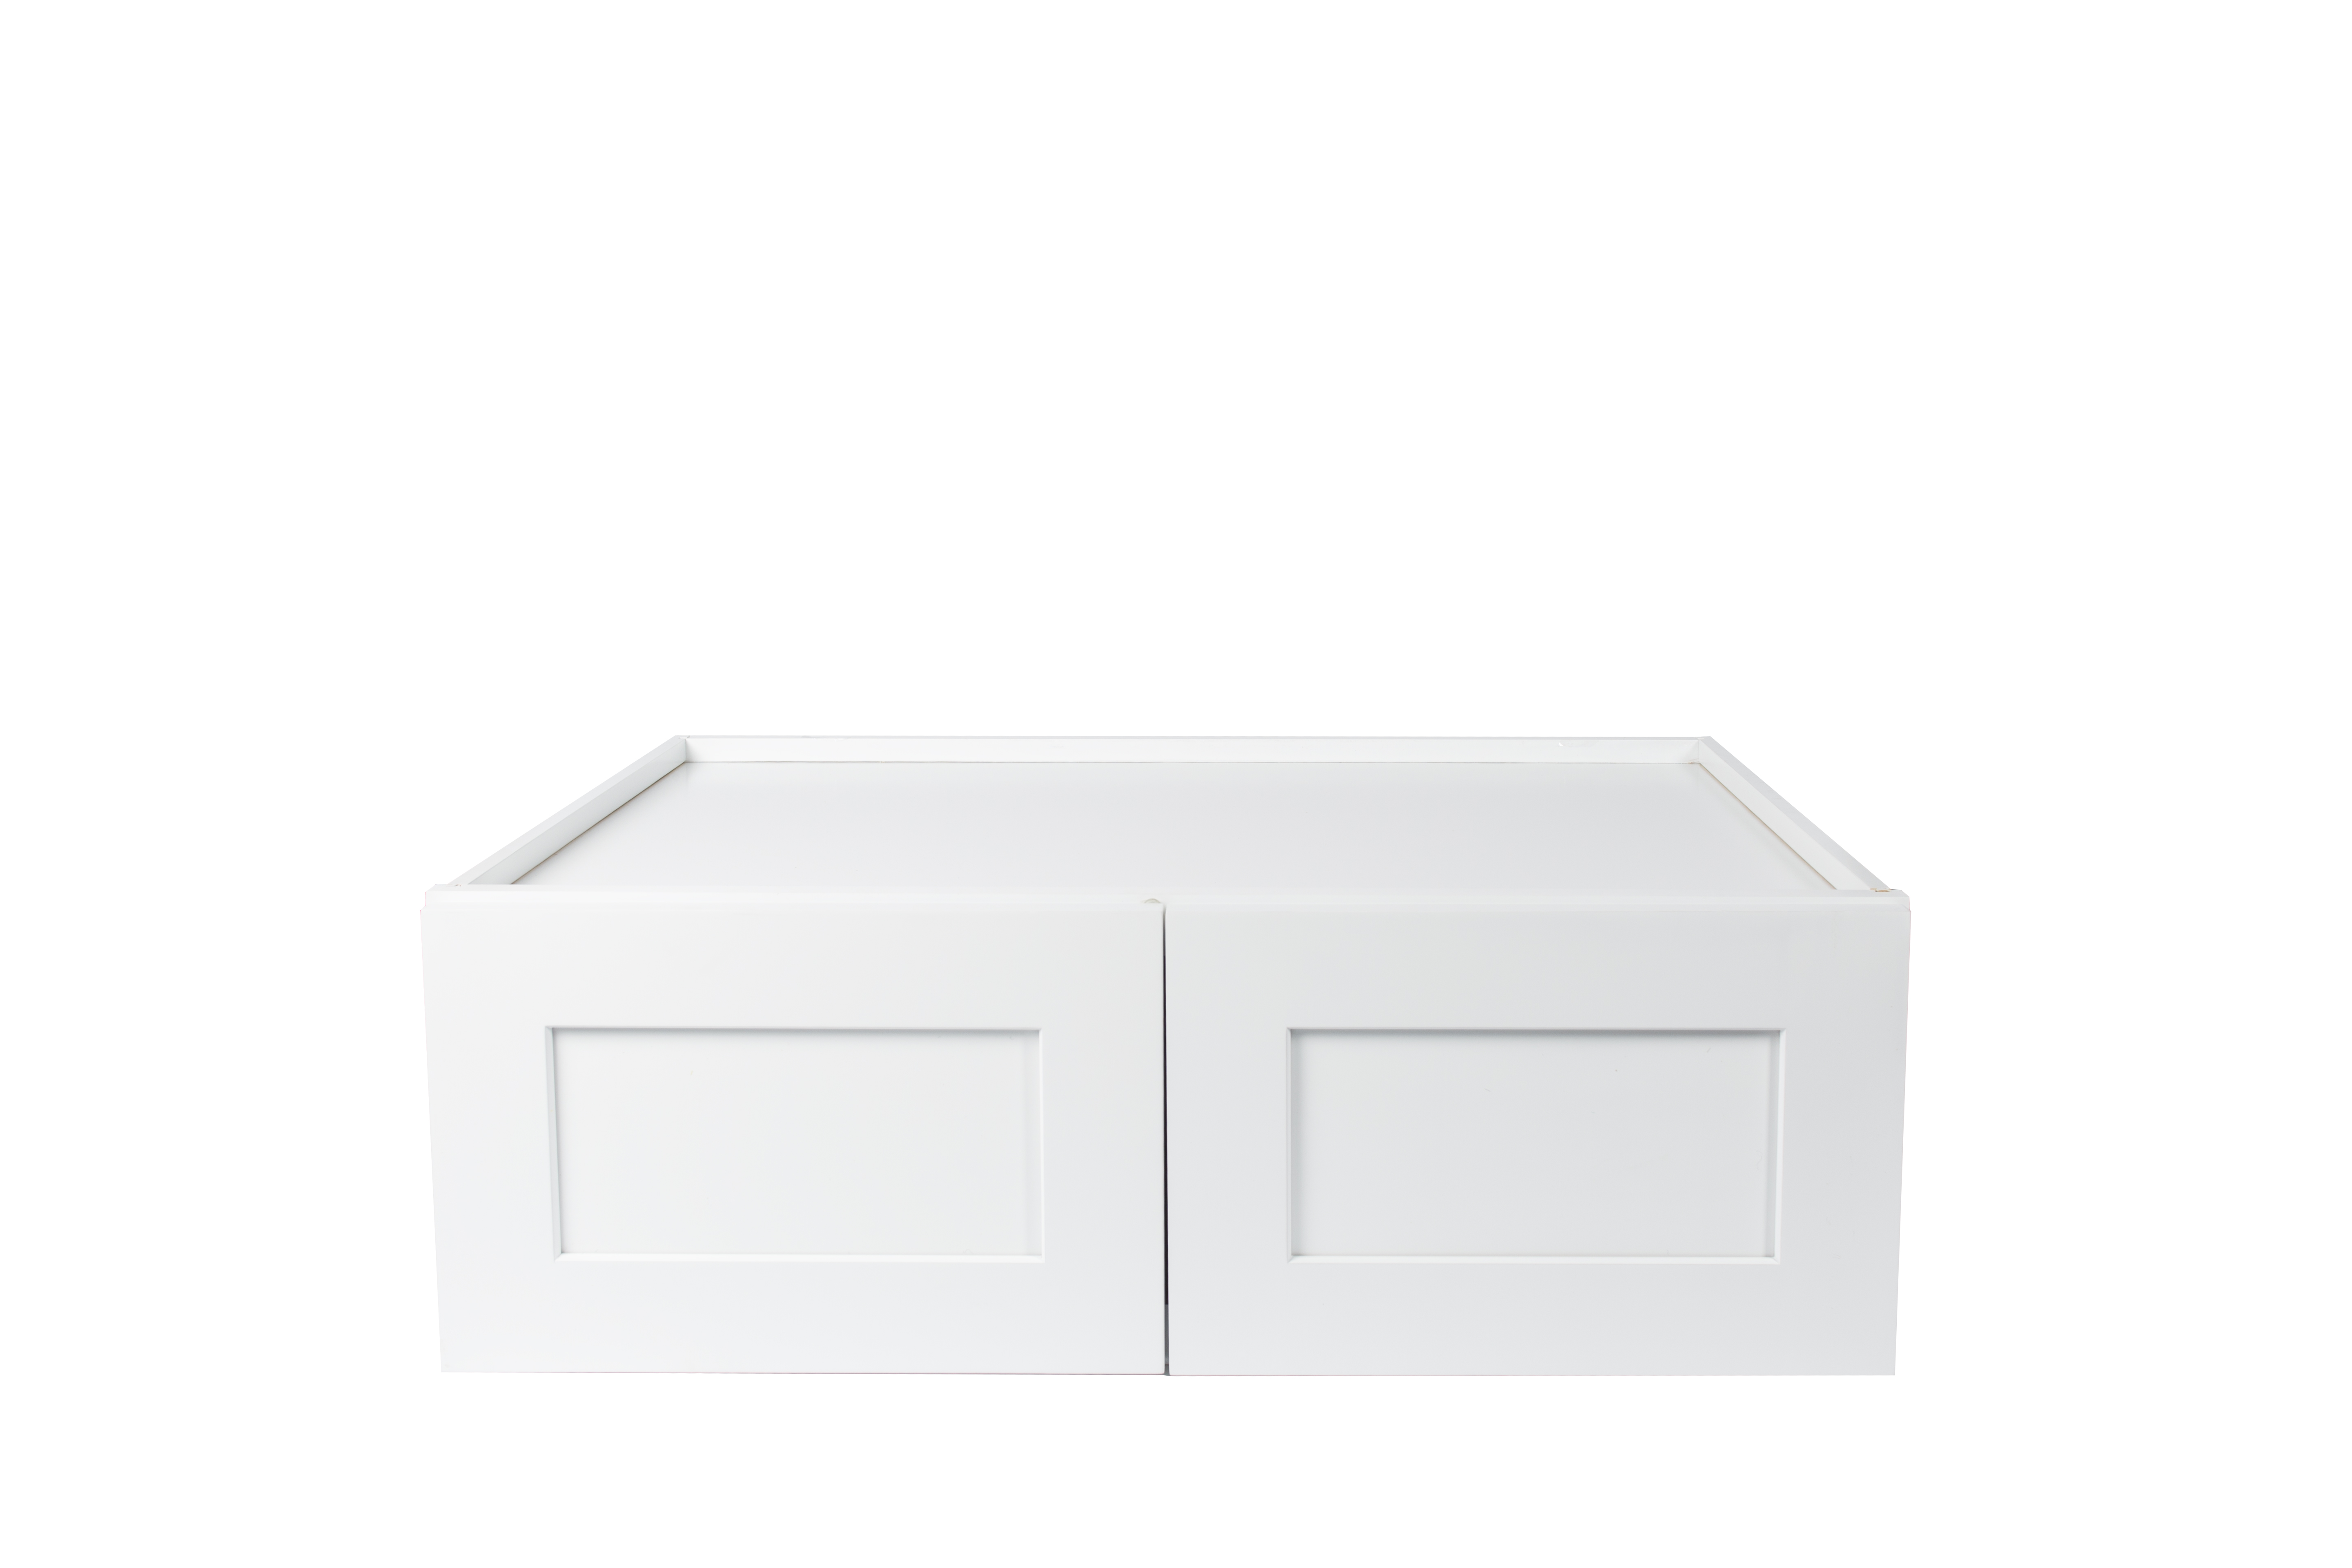 Ready to Assemble 36x18x12 in. Shaker High Double Door Wall Cabinet in White